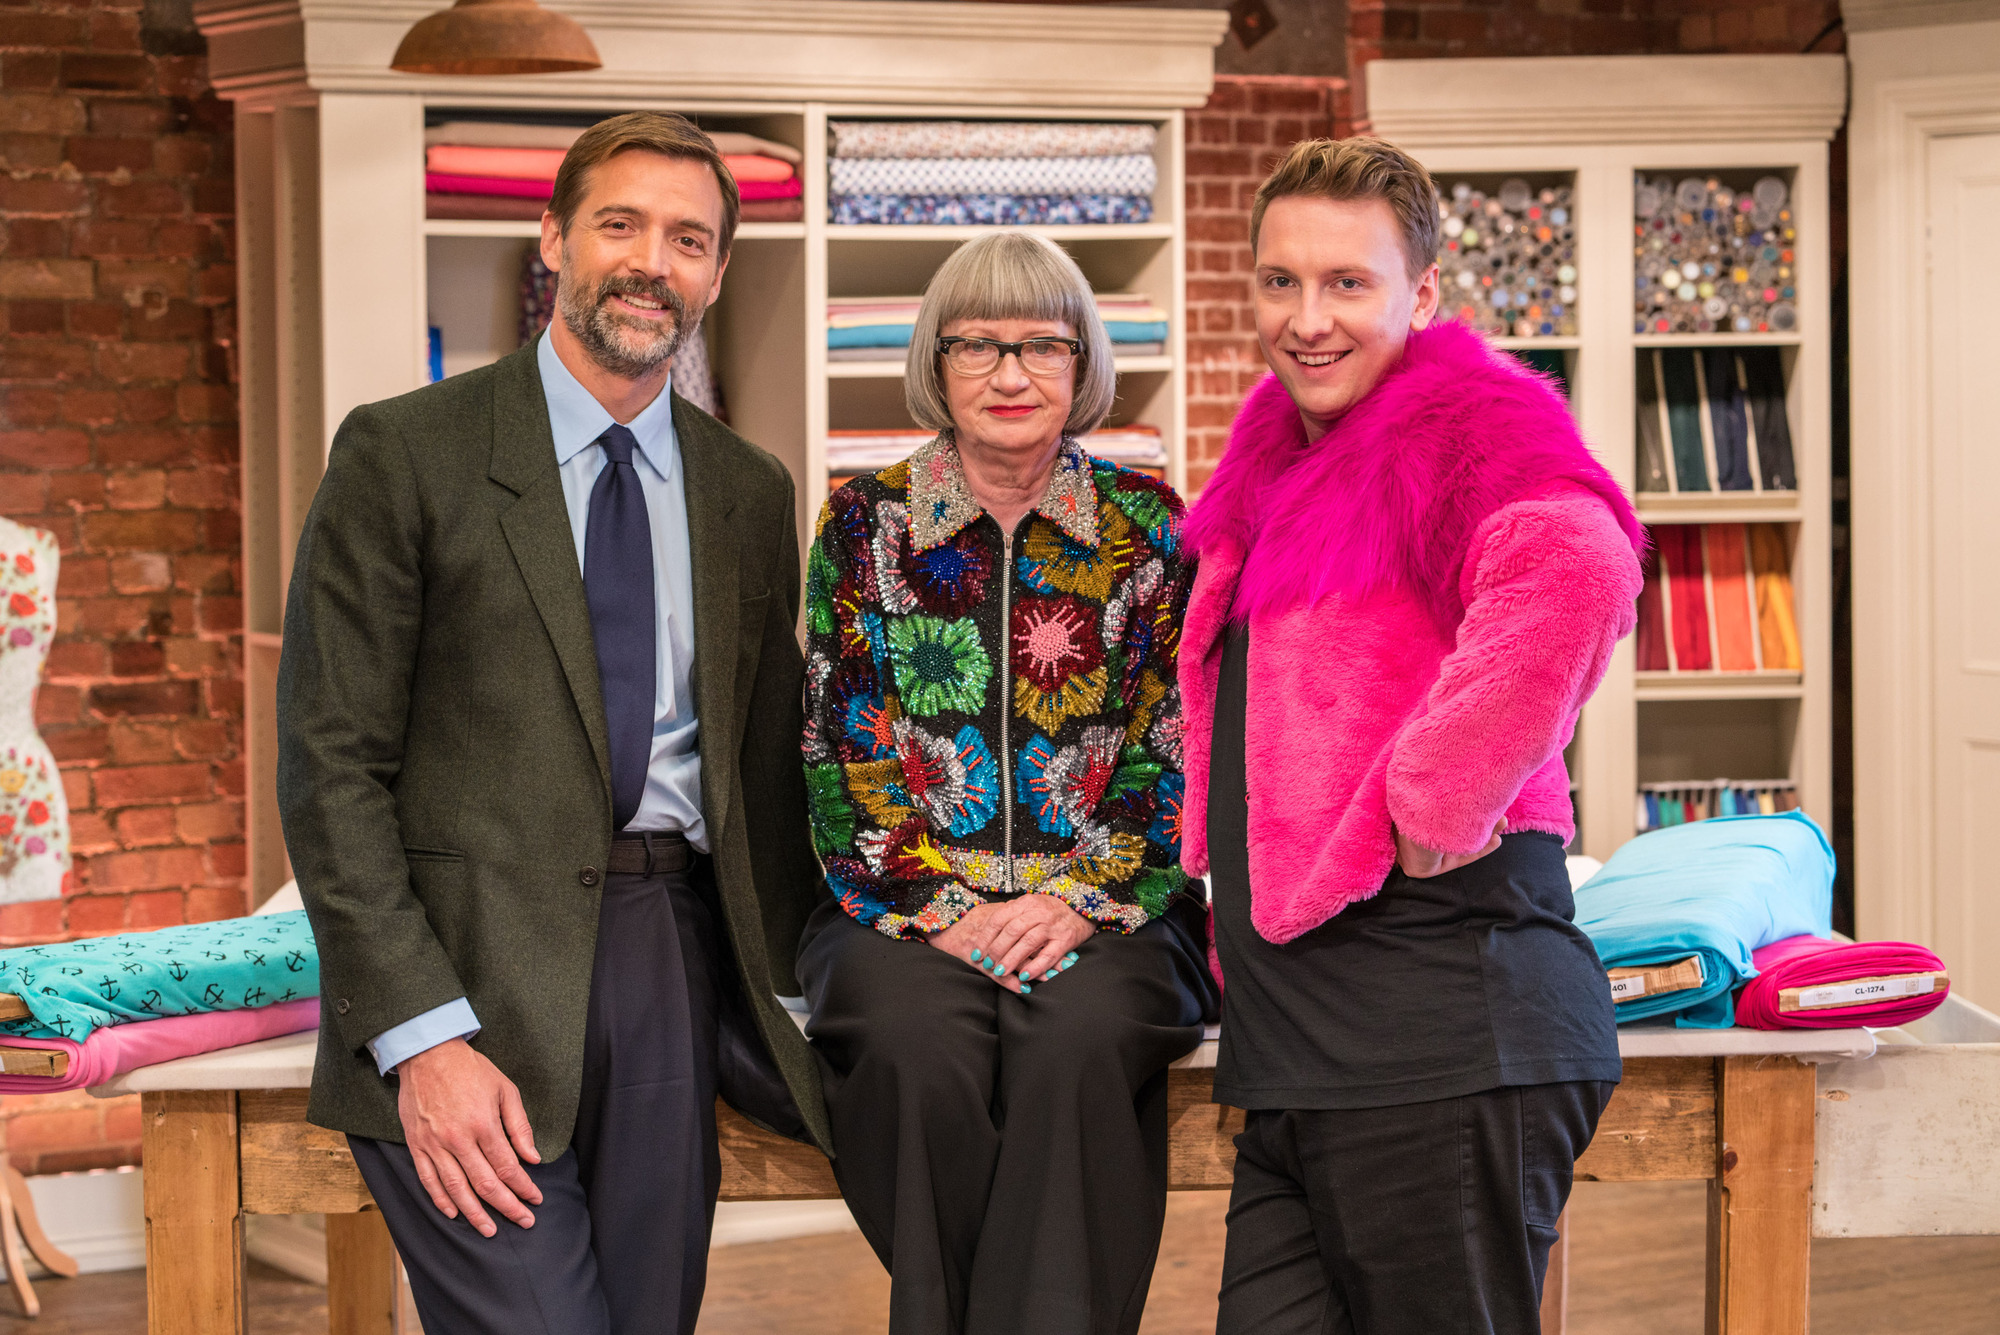 Patrick Grant, Esme Young and Joe Lycett on The great british sewing bee